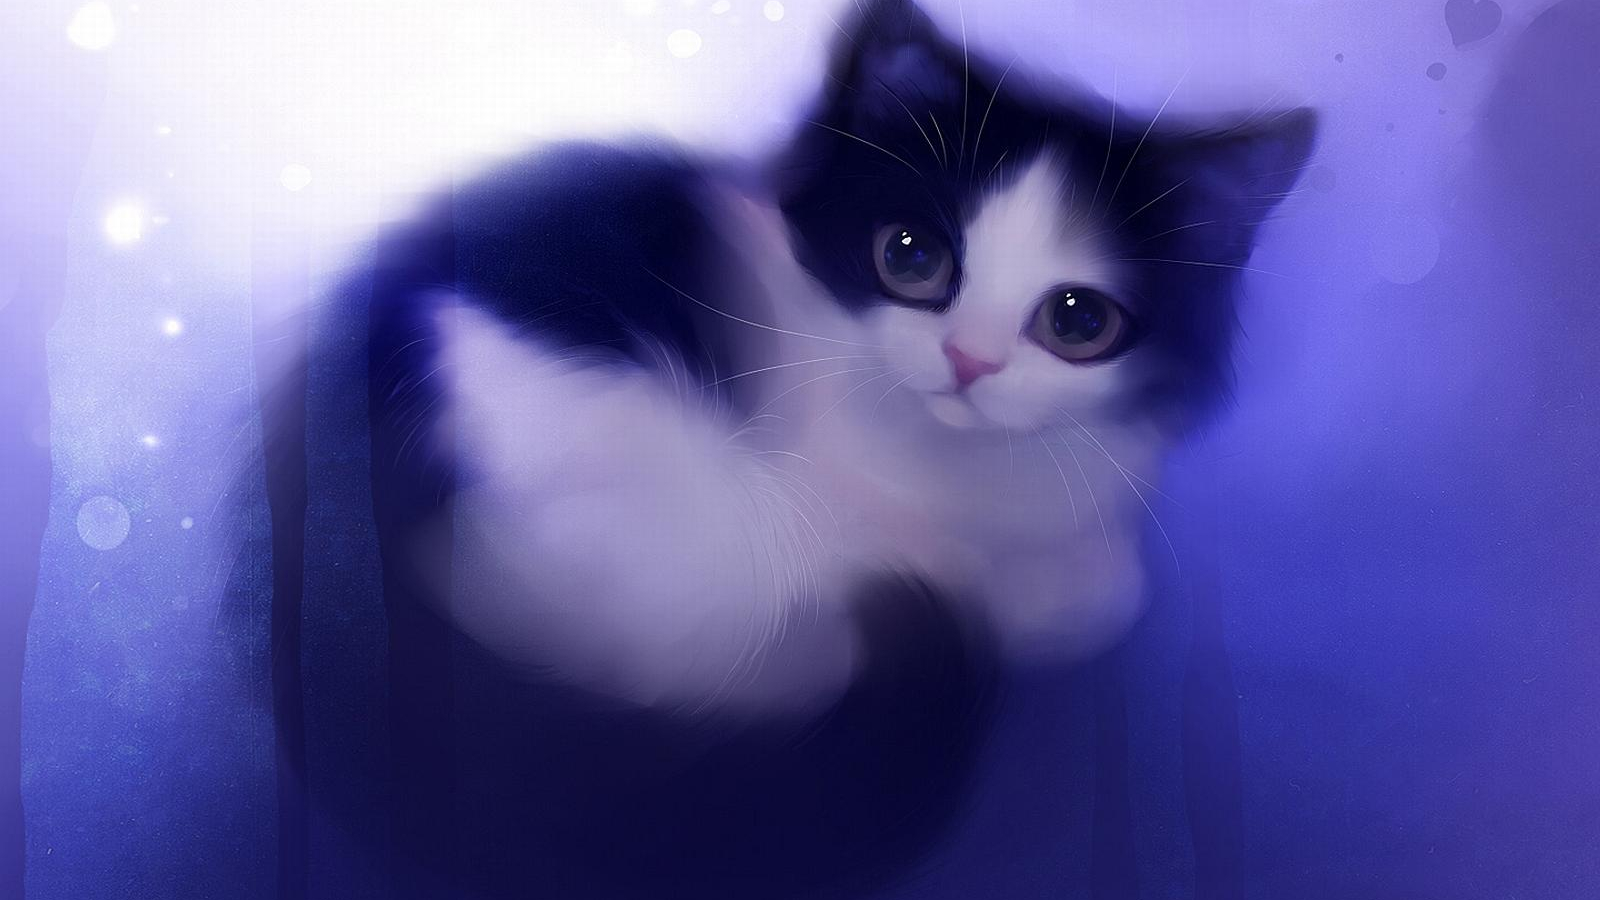 Free Download Black Xpx Cute And White Cat Wallpaper Hd Wallpapers 1600x1200 For Your Desktop Mobile Tablet Explore 65 Black And White Cat Wallpaper White Cat Wallpaper Free Black